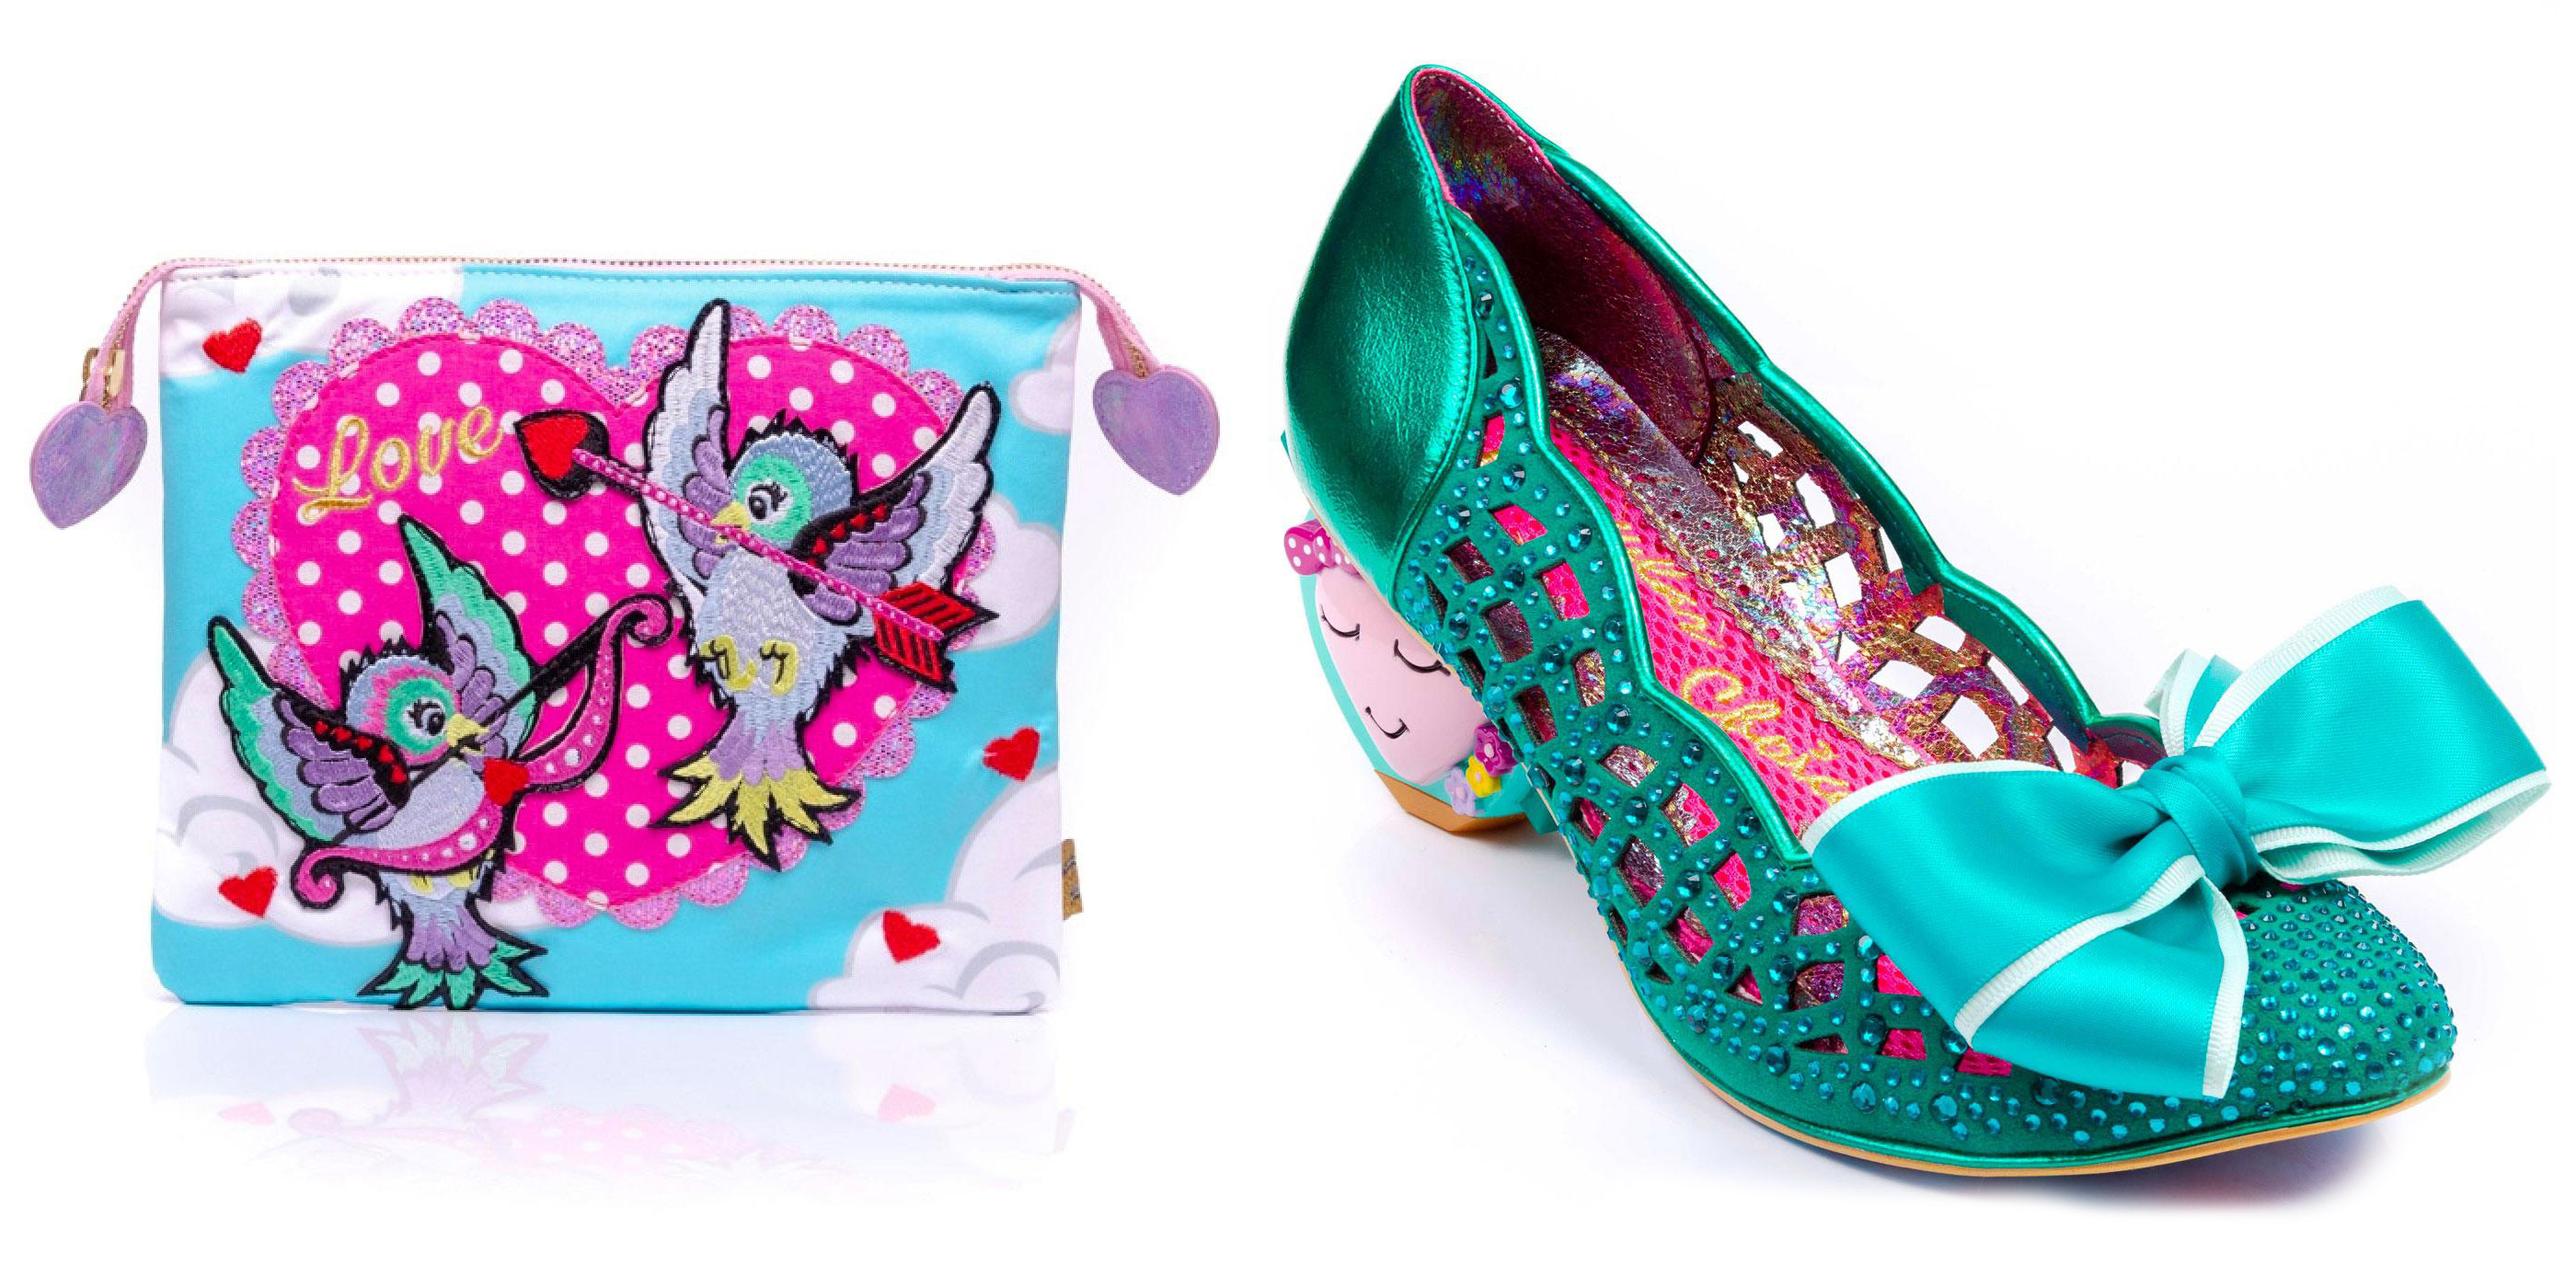 Cupid Love Bird pouch and Liefde heels from Irregular Choice